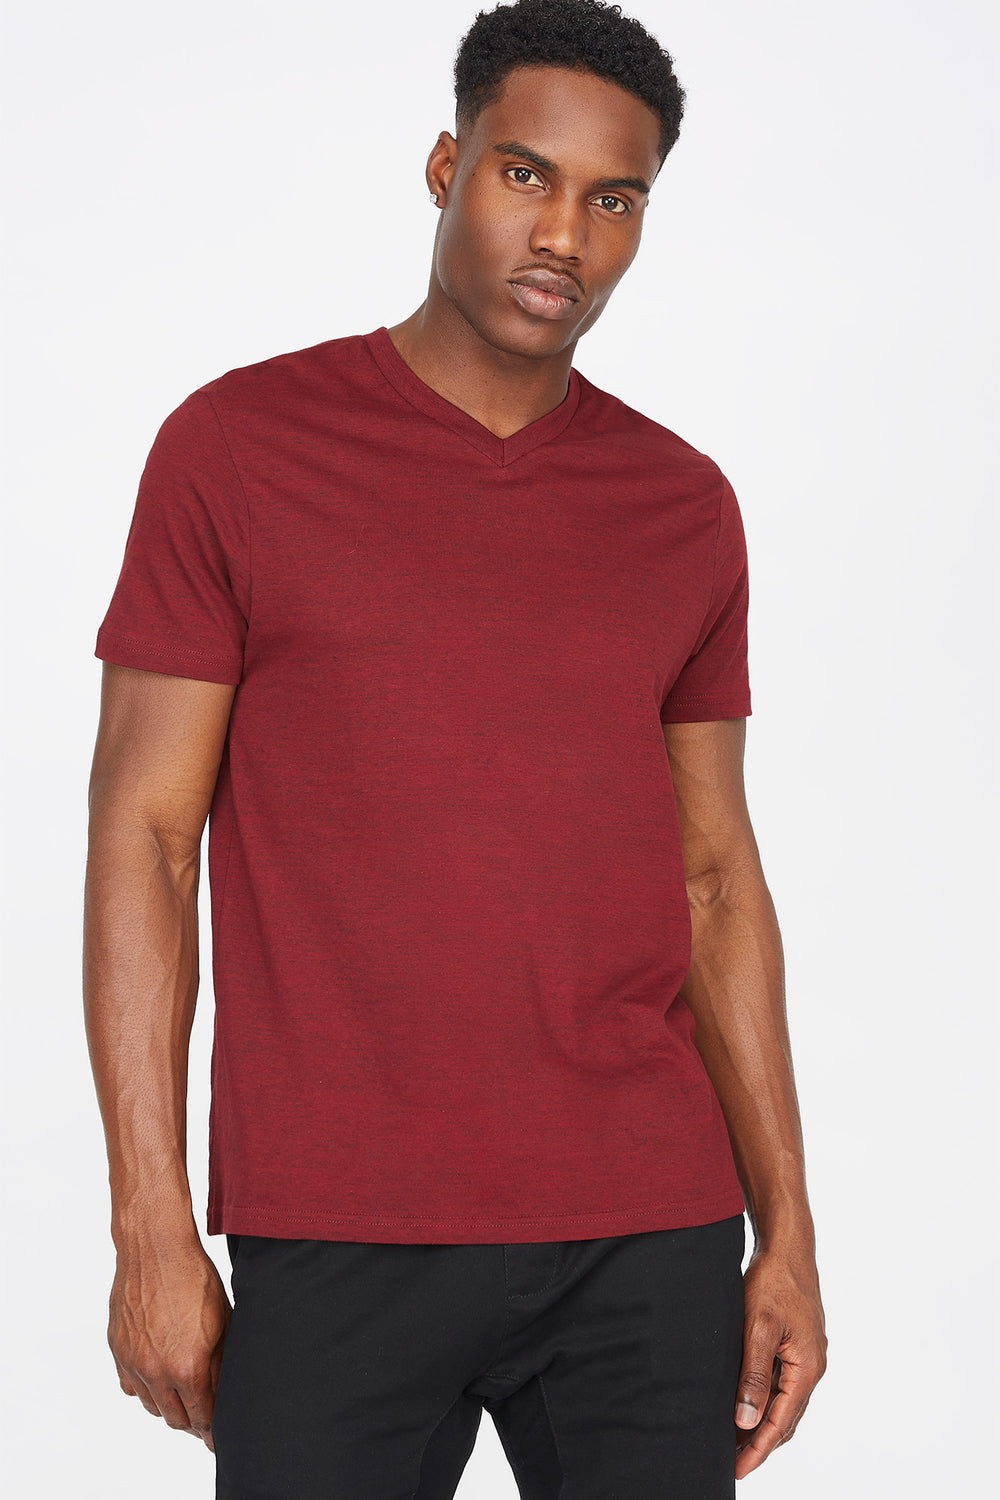 Space Dye V-Neck T-Shirt Burgundy